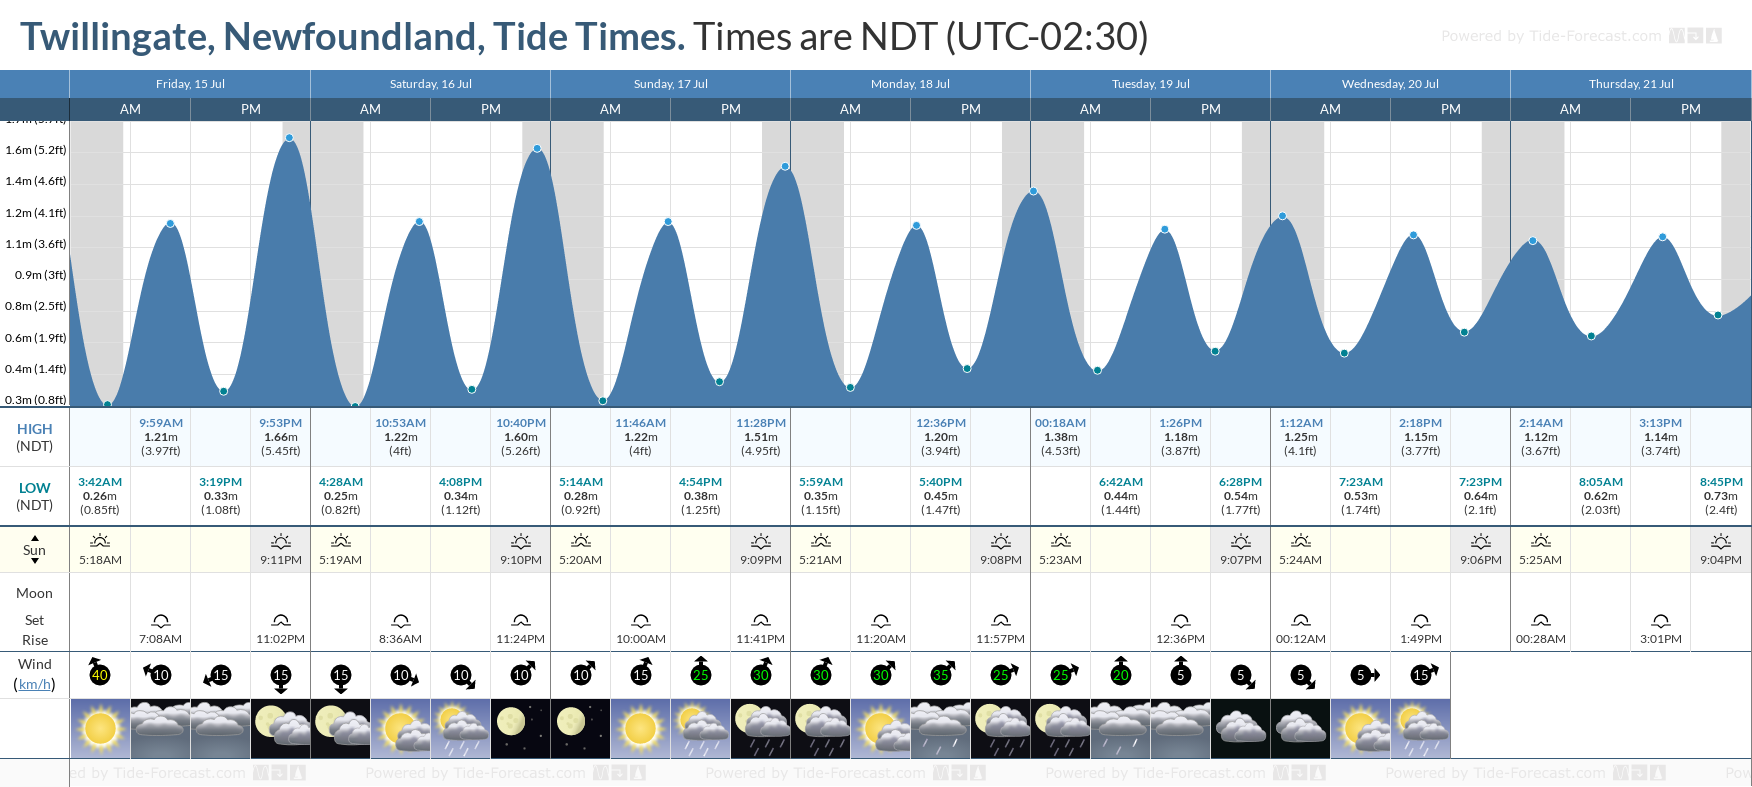 Twillingate, Newfoundland Tide Chart including high and low tide tide times for the next 7 days